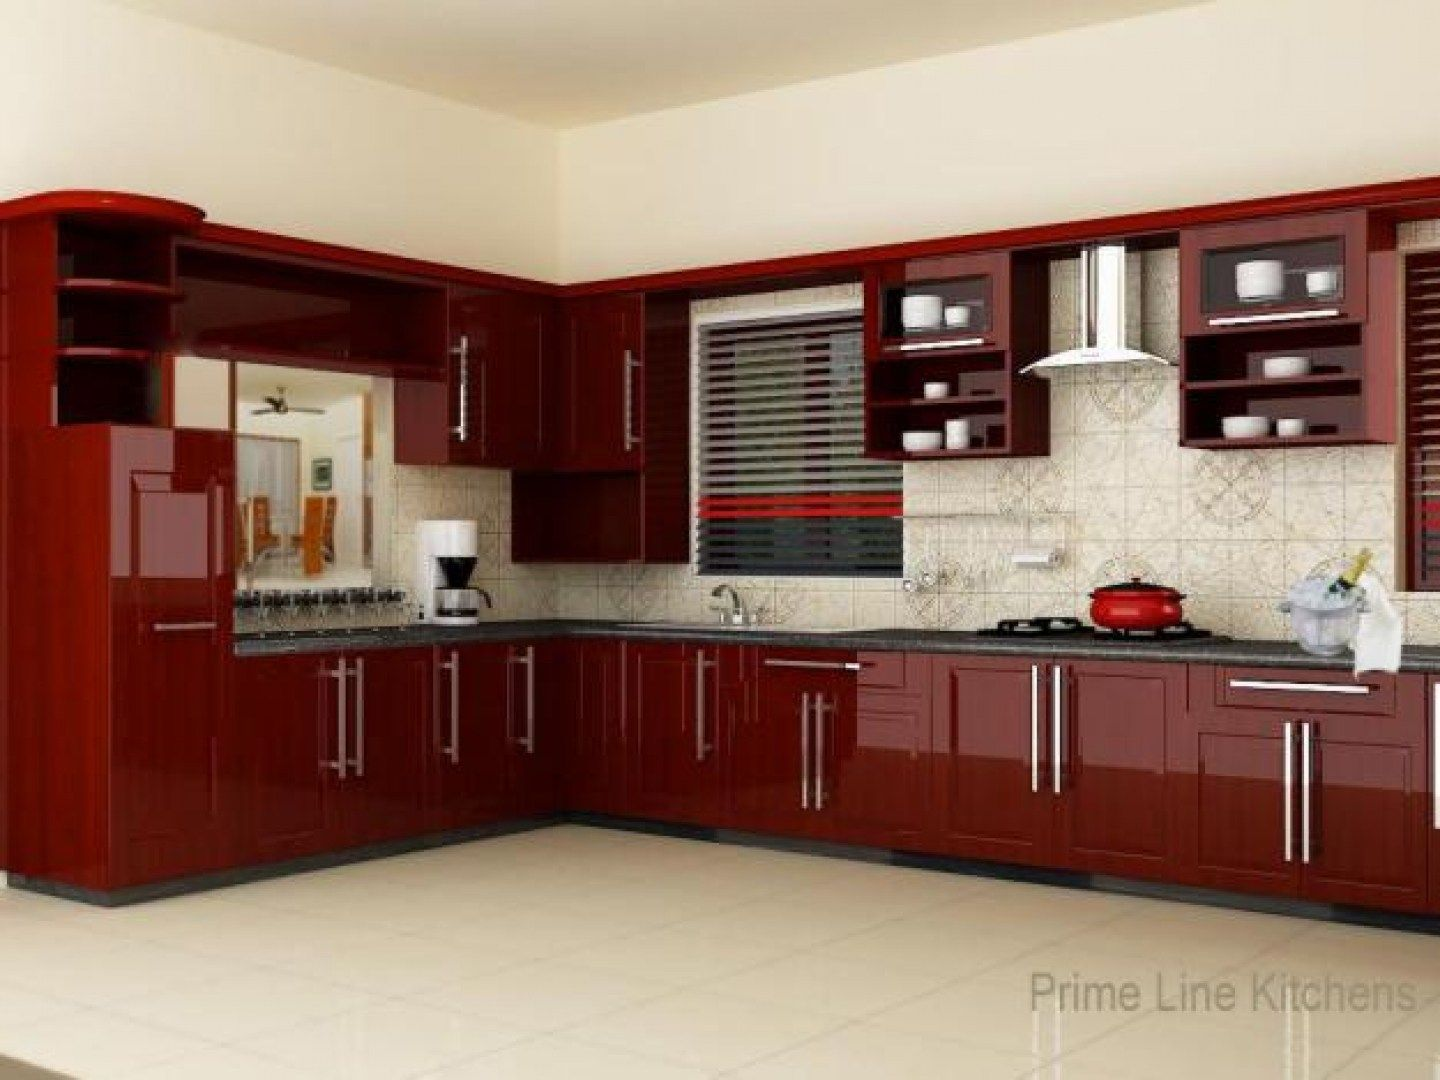 Kitchen design ideas kitchen woodwork designs hyderabad Kitchen setting pictures